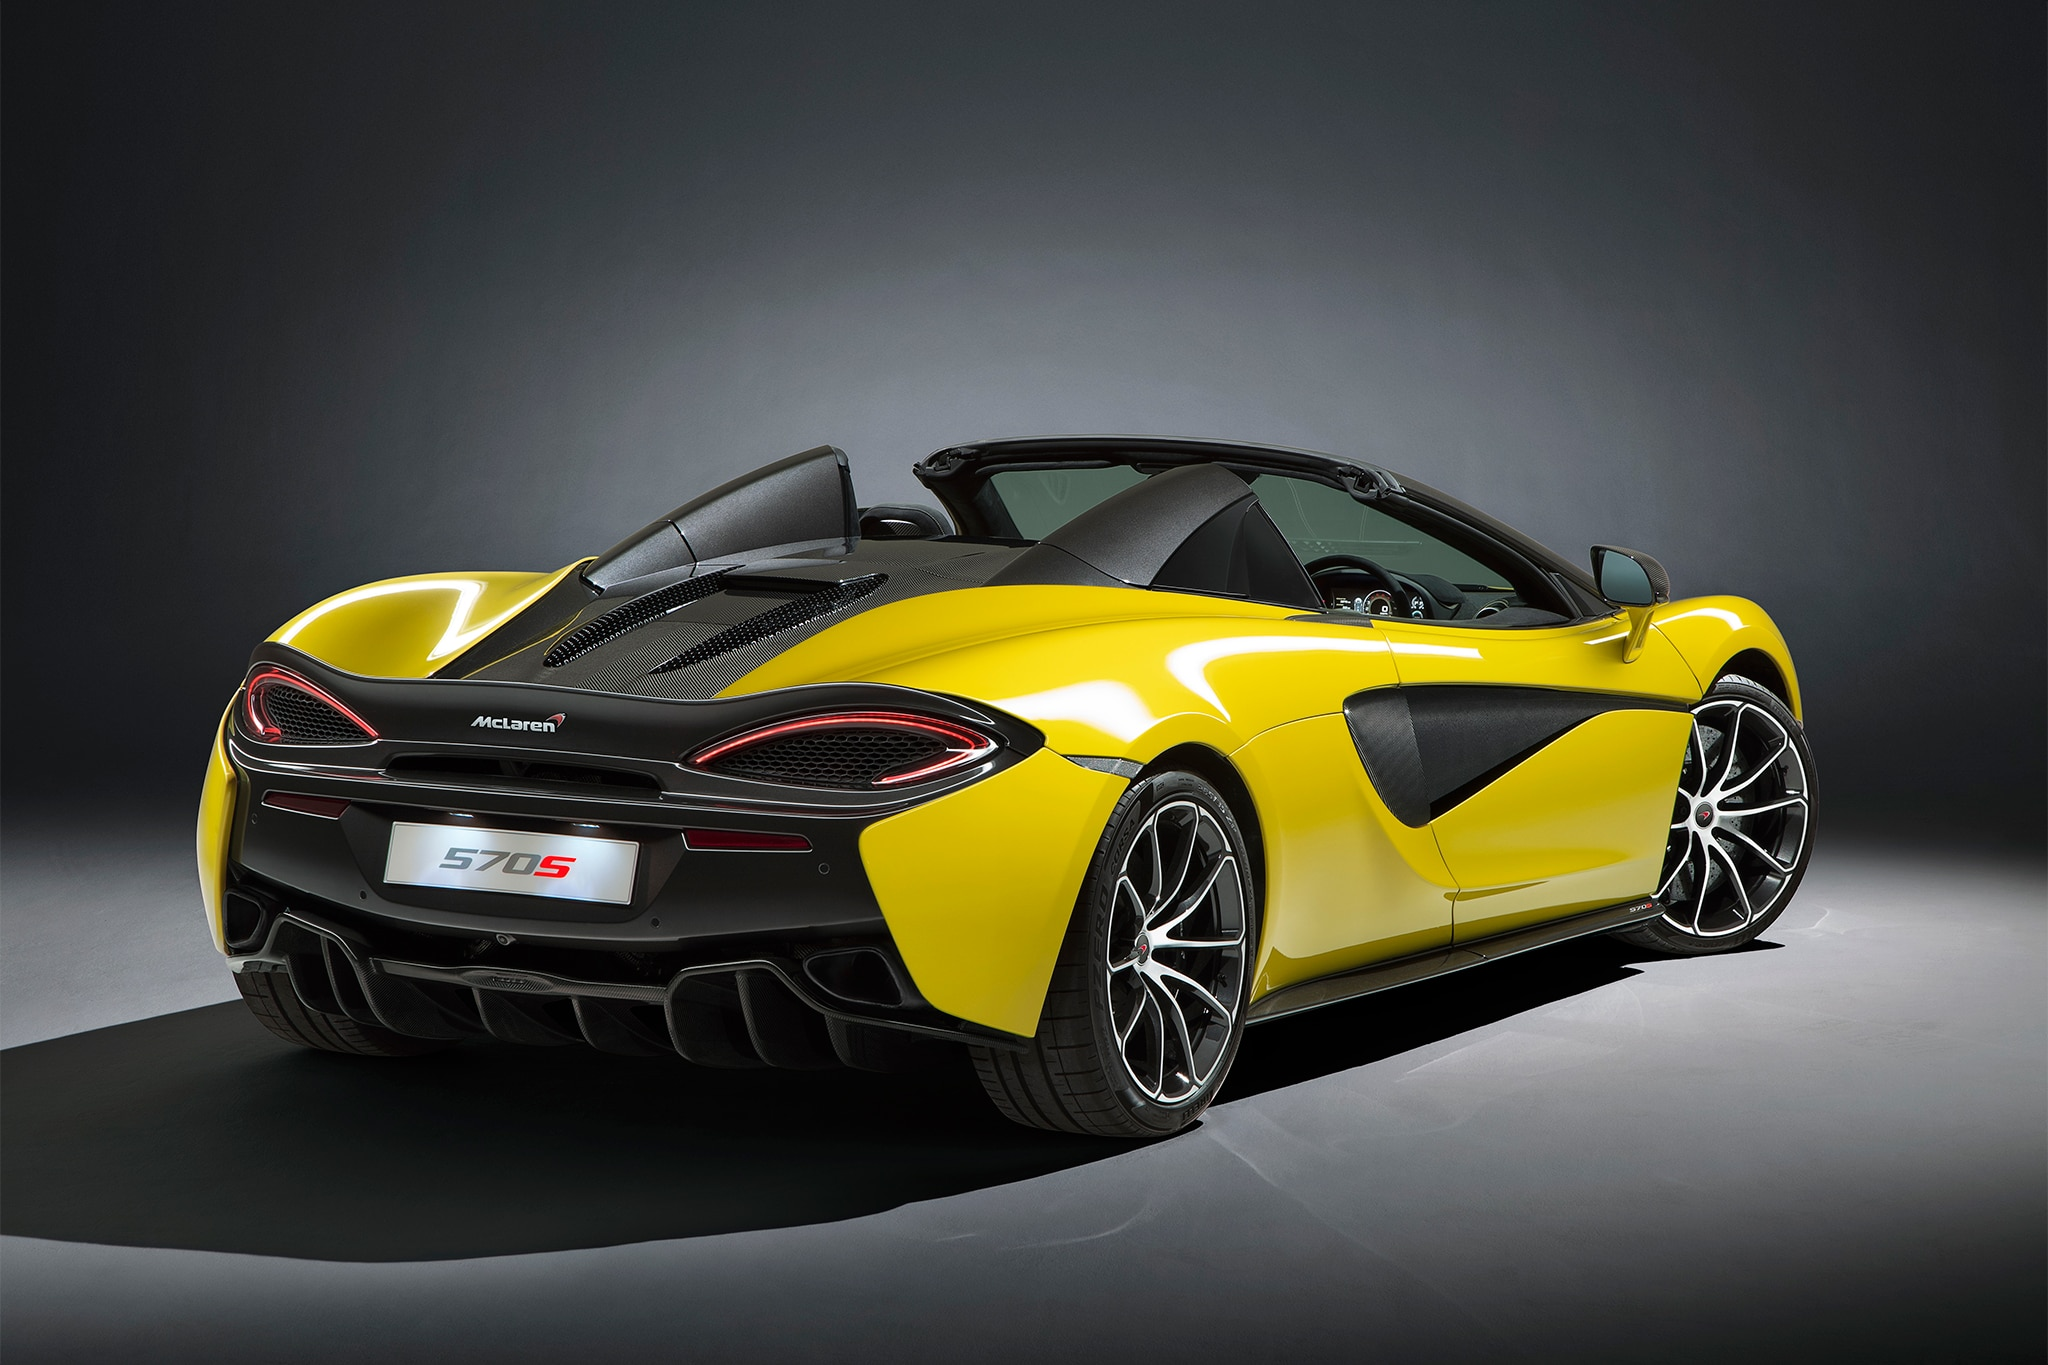 2018 mclaren cars. Wonderful Cars Show More With 2018 Mclaren Cars